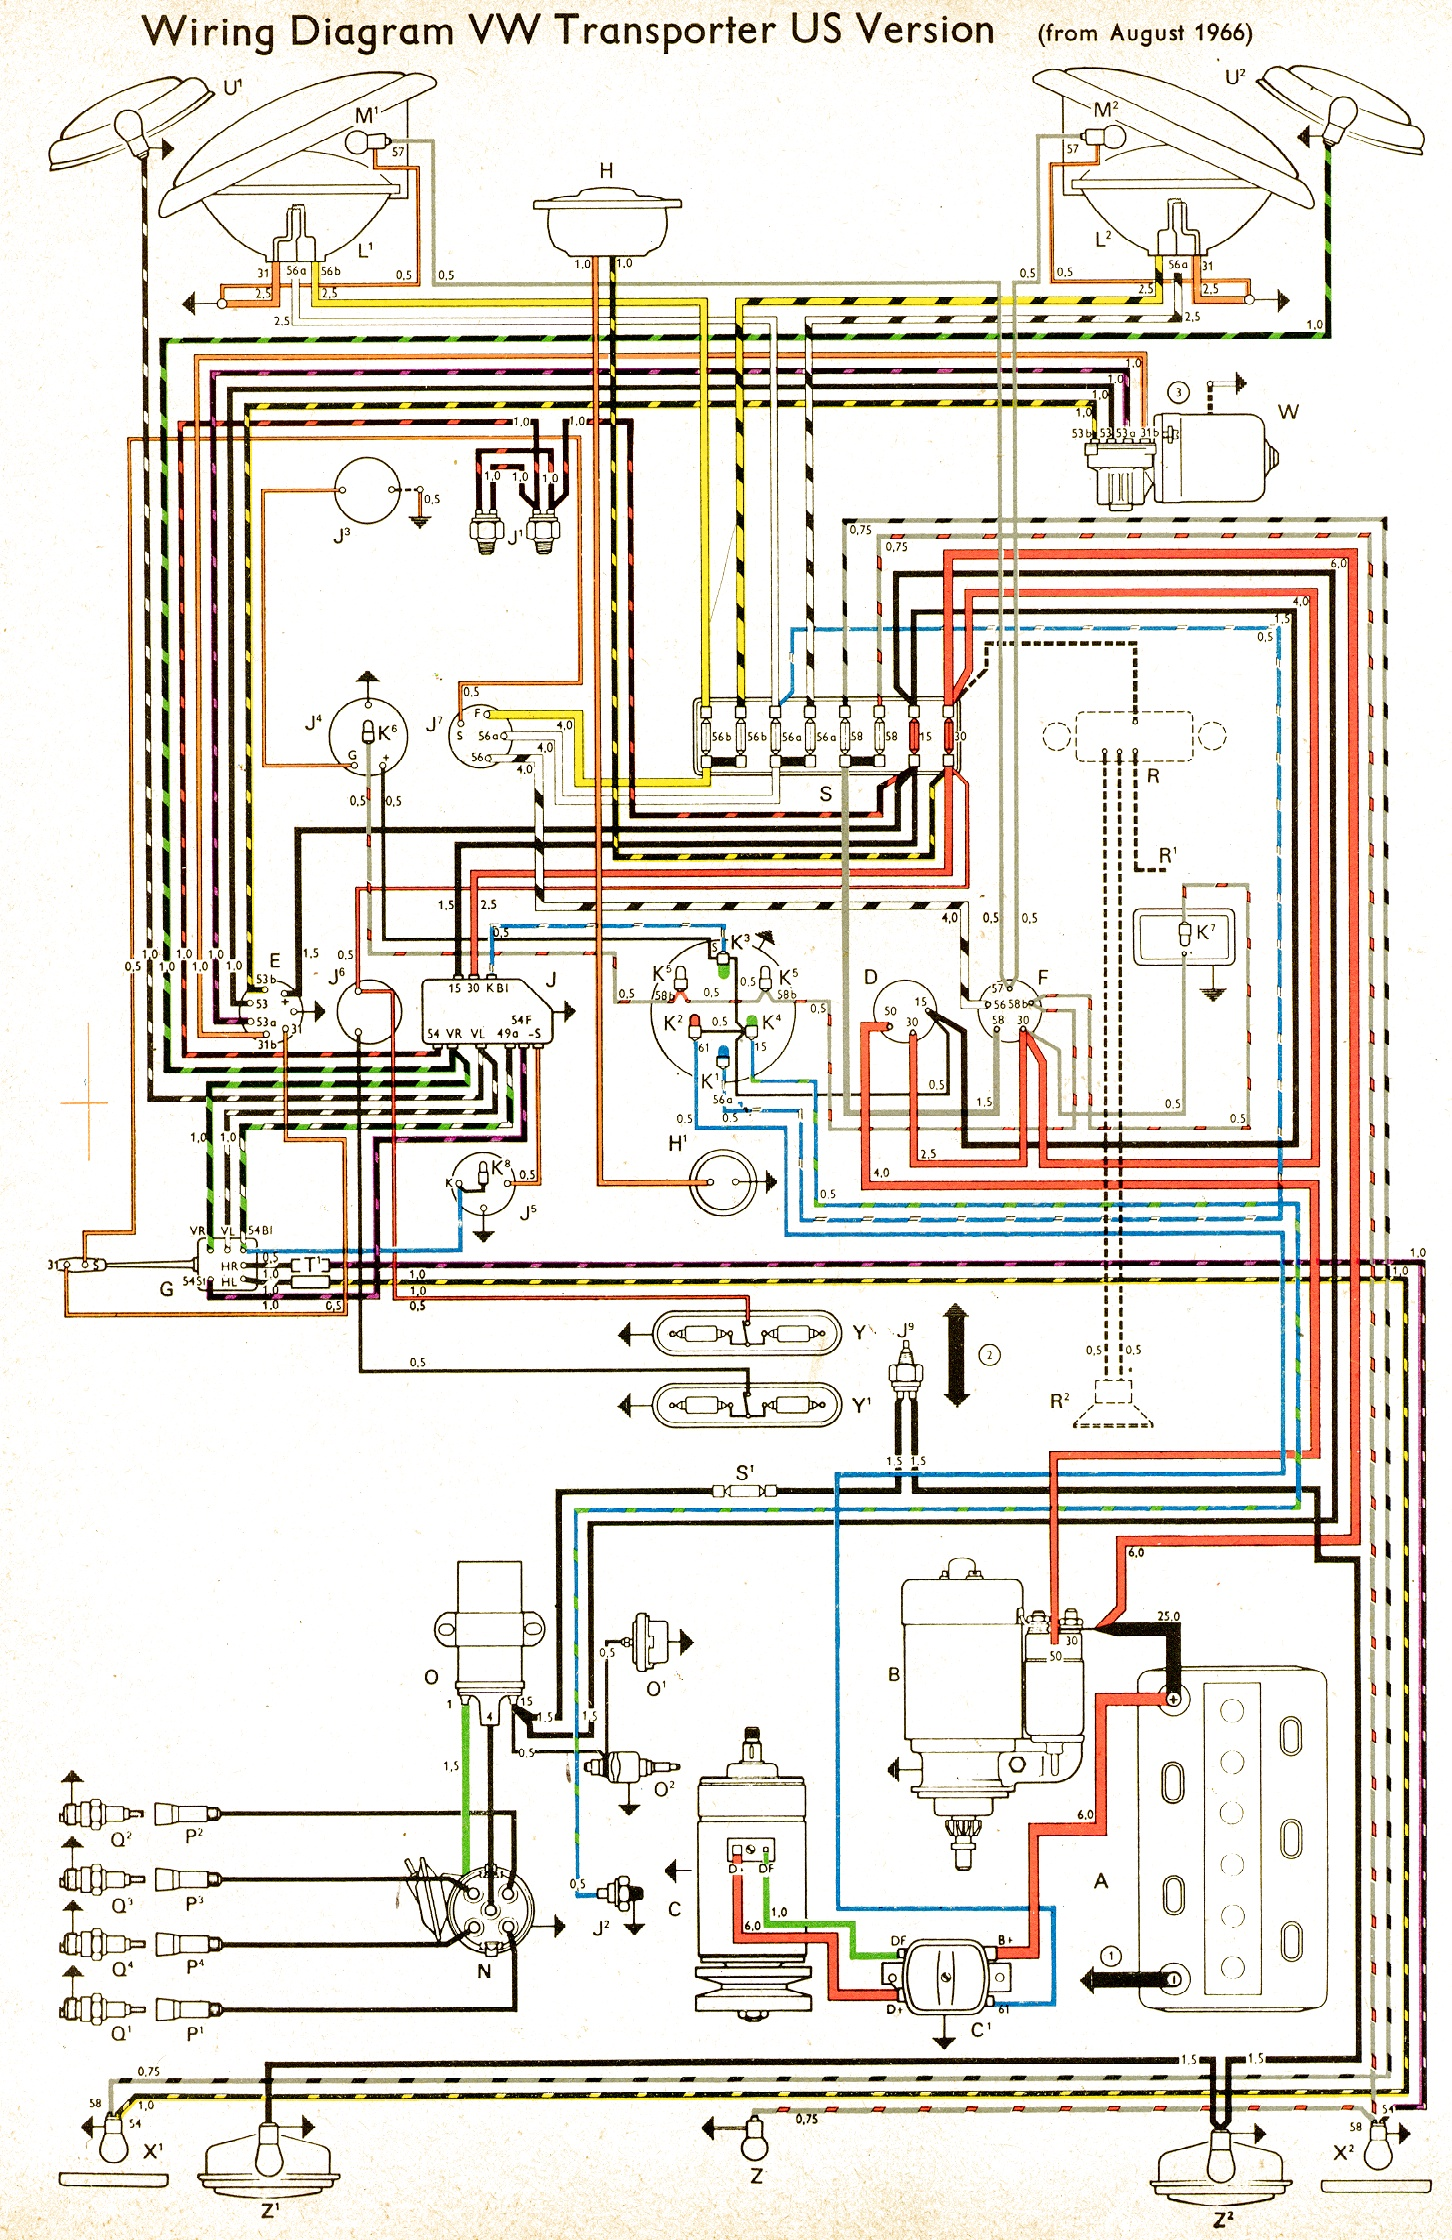 Bus Wiring Diagram Basic Schematic 1984 Corvette Vintagebus Com Vw And Other Diagrams Gravel Transport